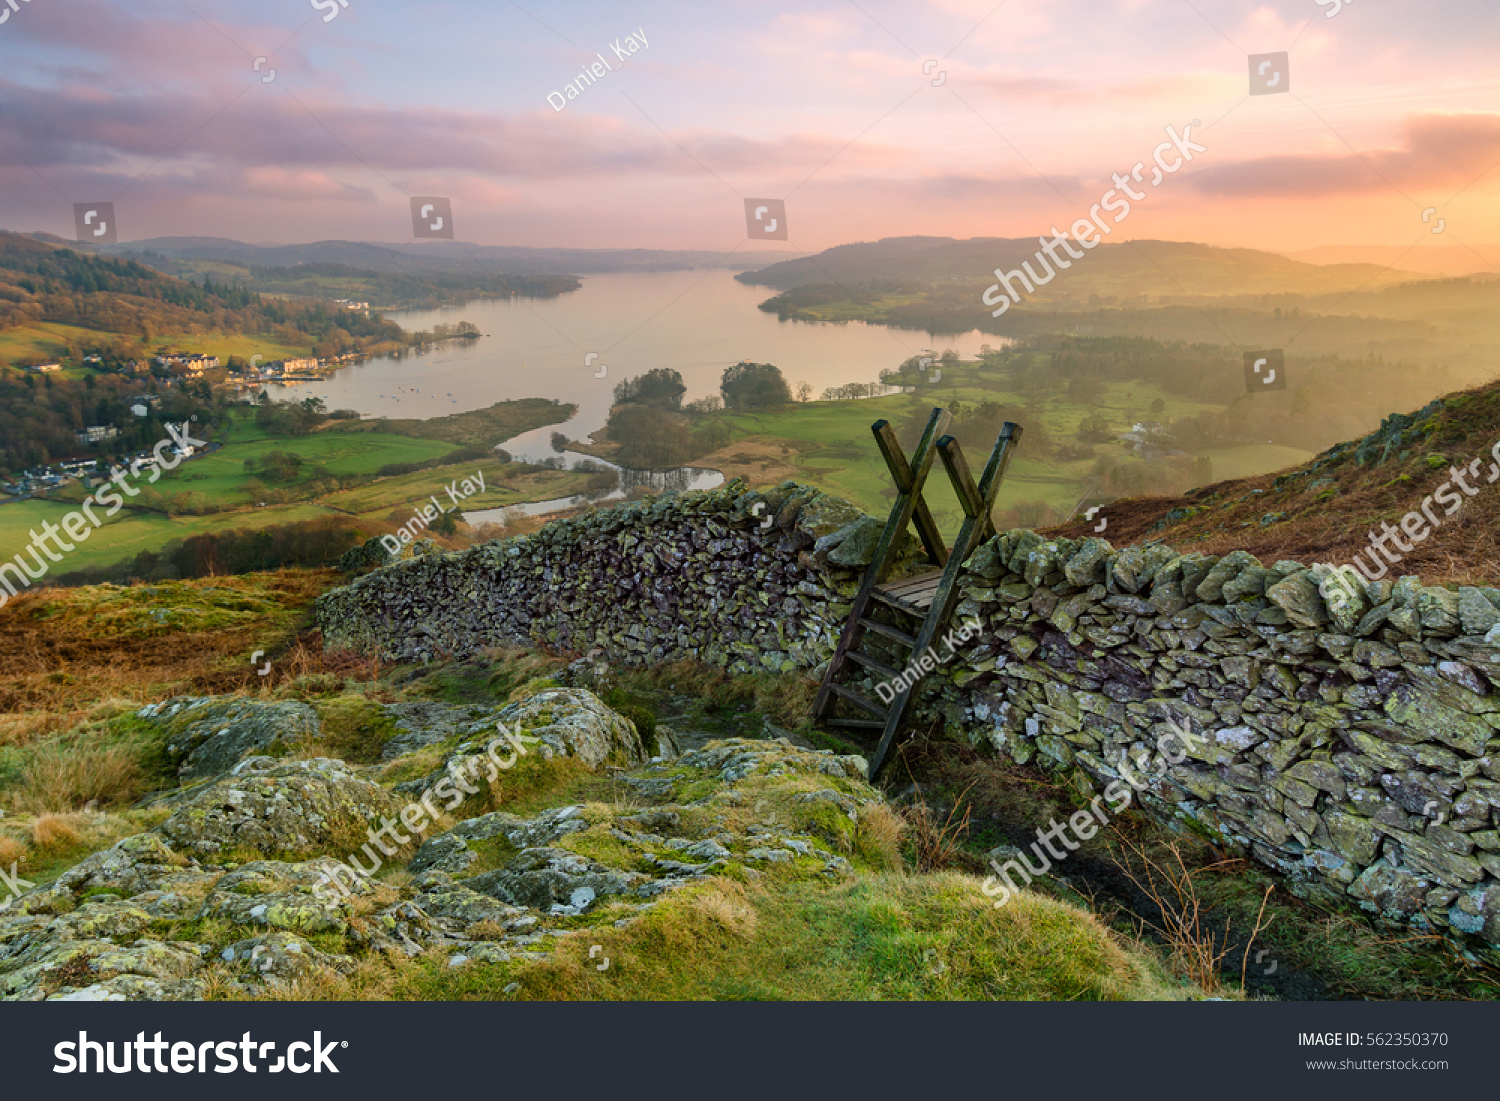 Beautiful sunset over Windermere in the Lake District with a stile and stone wall in the foreground. #562350370